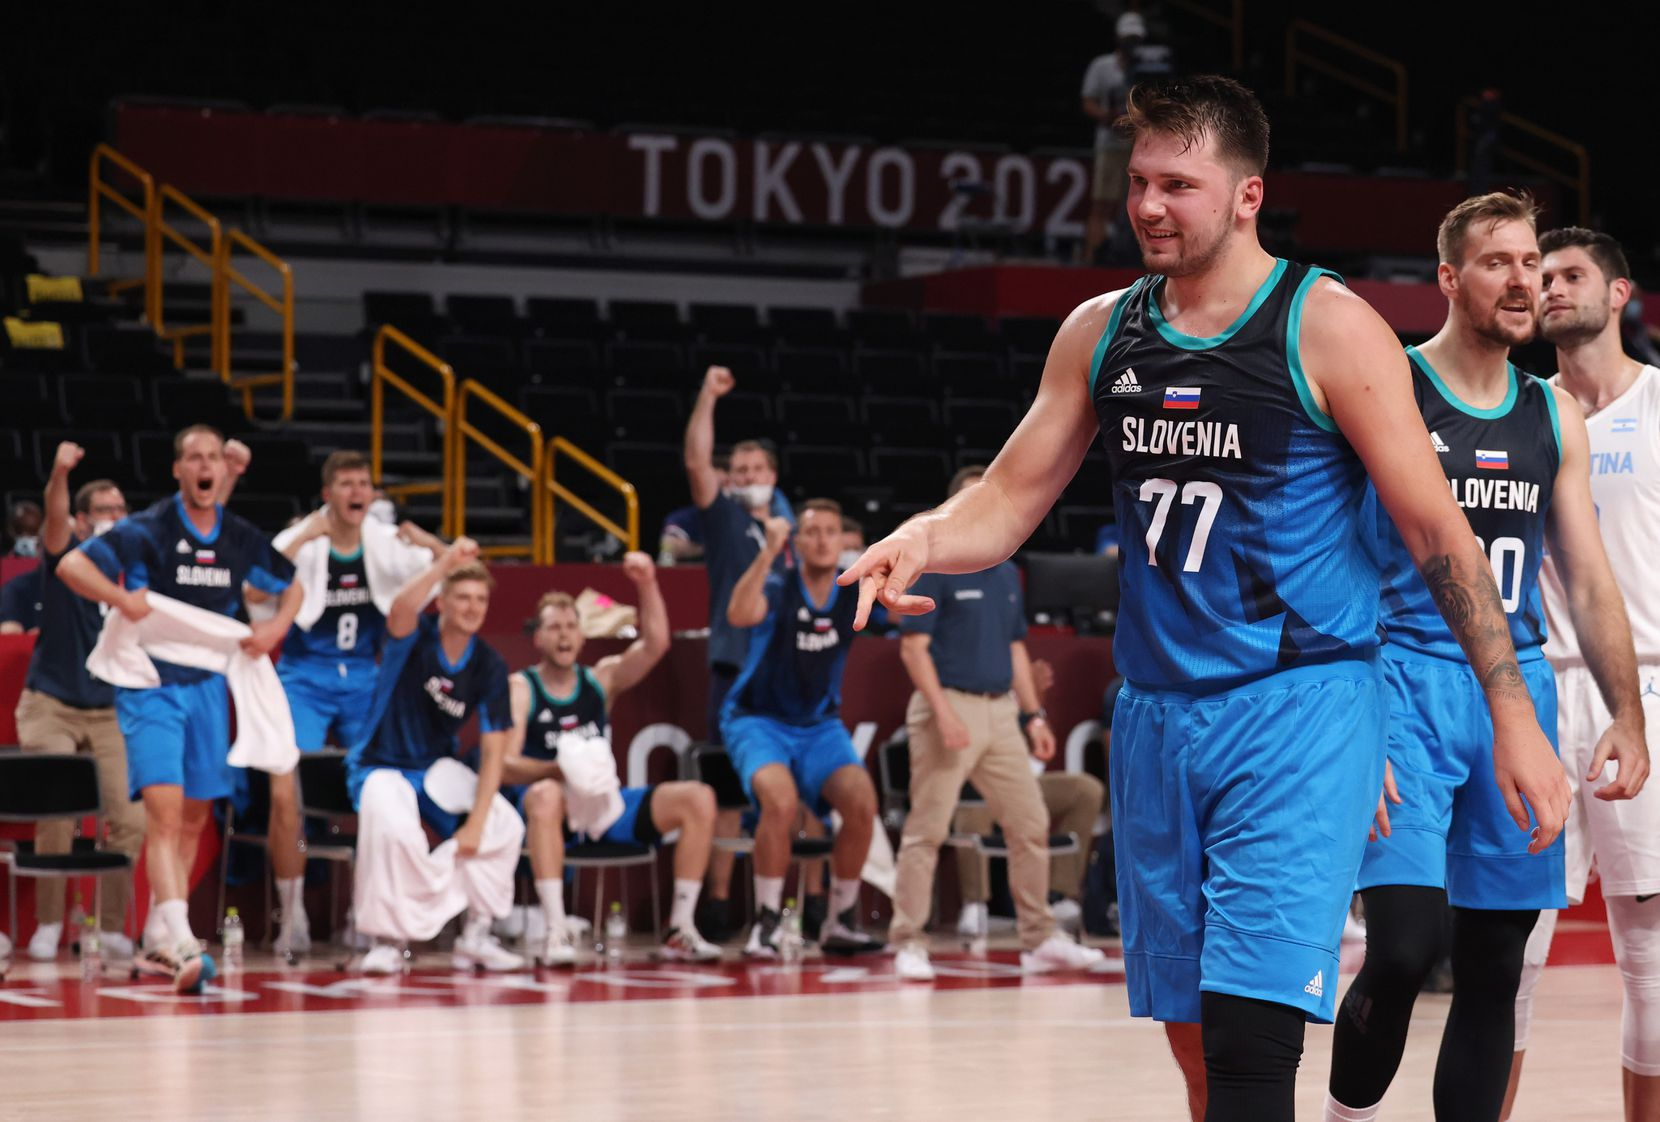 Slovenia's Luka Doncic (77) signals a made basket after he was fouled on a basket in the first half of play against Argentina during the postponed 2020 Tokyo Olympics at Saitama Super Arena on Monday, July 26, 2021, in Saitama, Japan. Slovenia defeated Argentina 118-100. (Vernon Bryant/The Dallas Morning News)